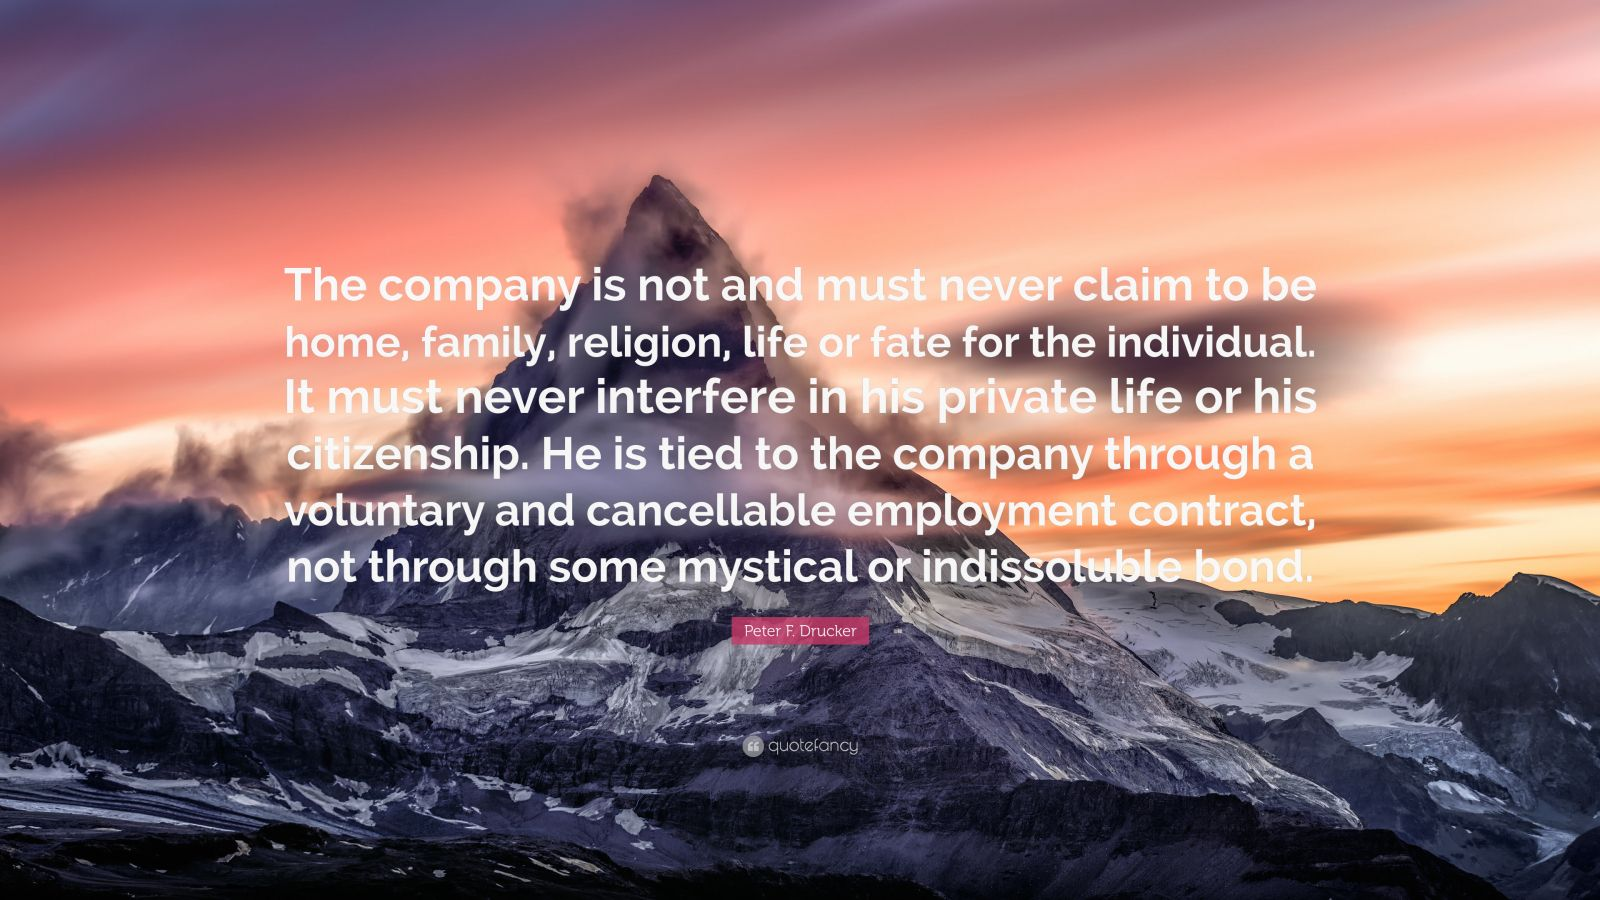 """Peter F. Drucker Quote: """"The company is not and must never claim to be home, family, religion, life or fate for the individual. It must never interfere in his private life or his citizenship. He is tied to the company through a voluntary and cancellable employment contract, not through some mystical or indissoluble bond."""""""